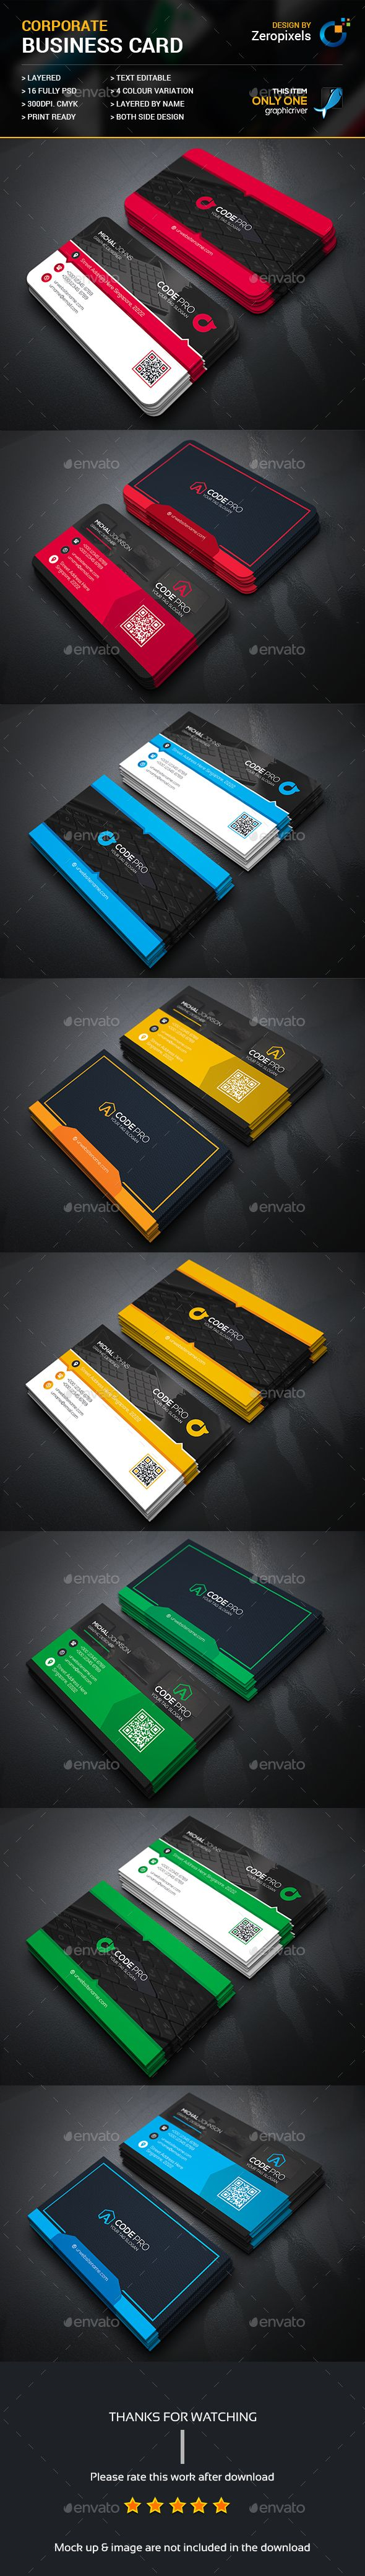 296 best business cards images on pinterest business cards carte